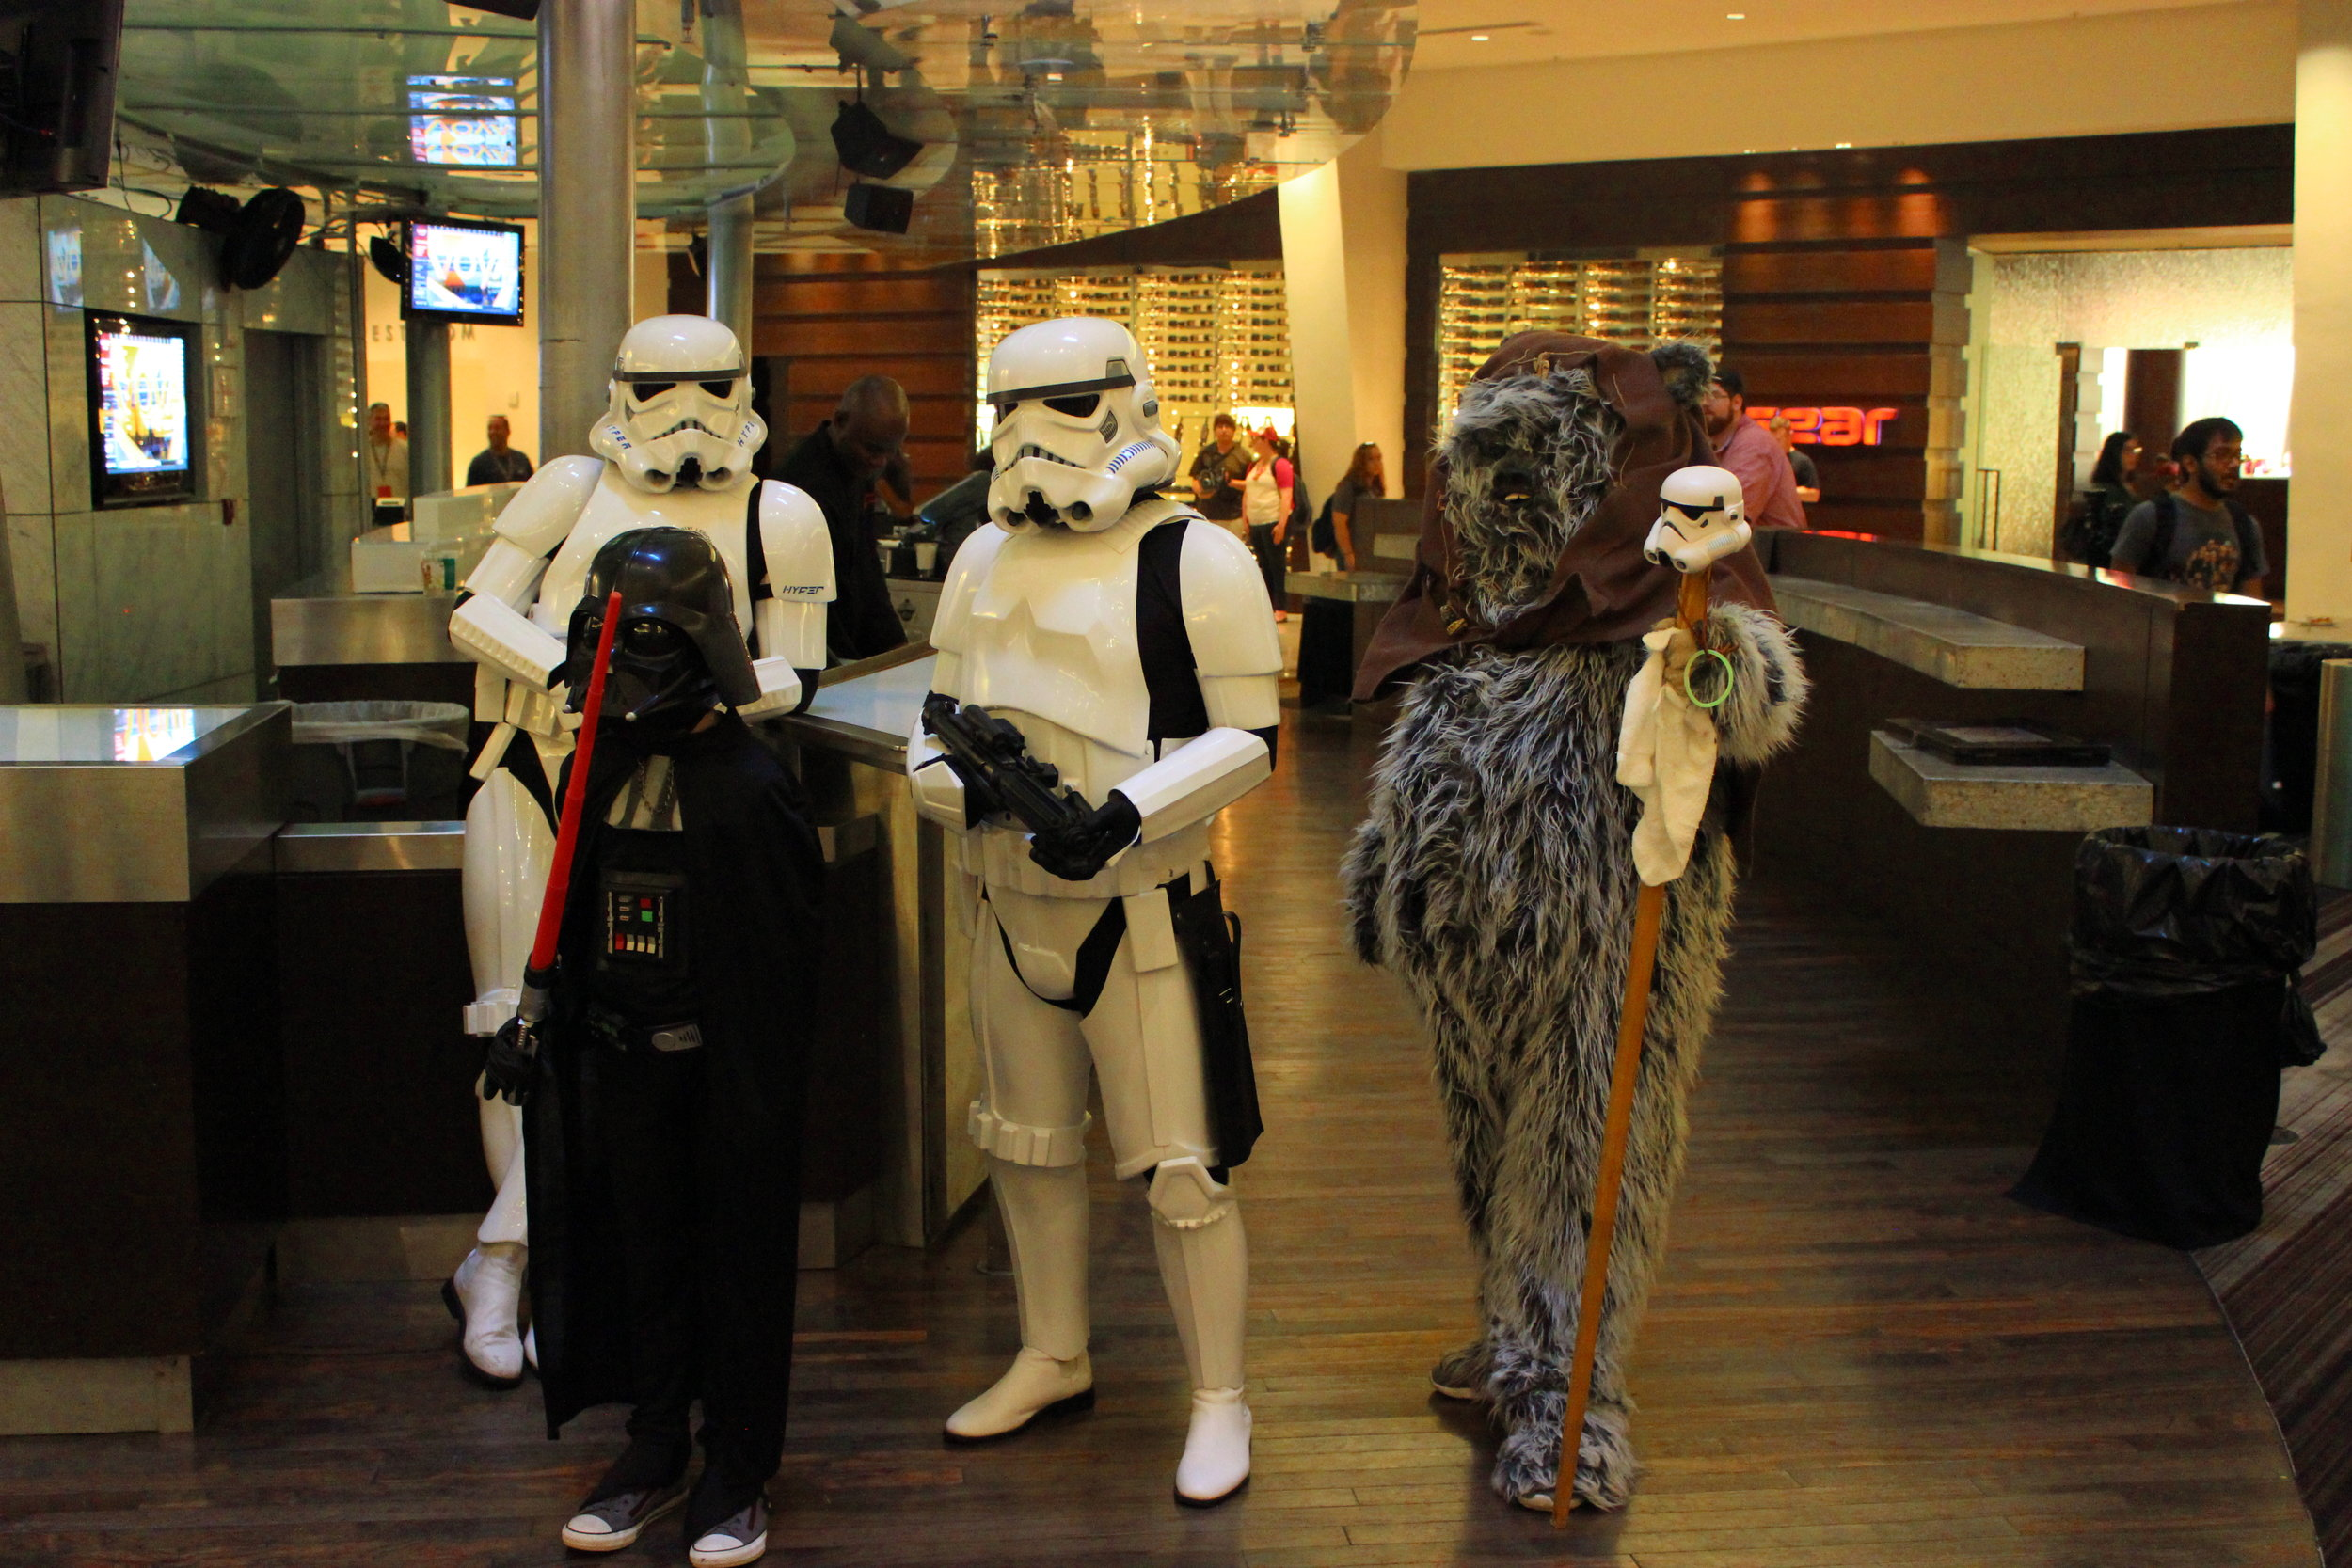 Star Wars Characters Assemble